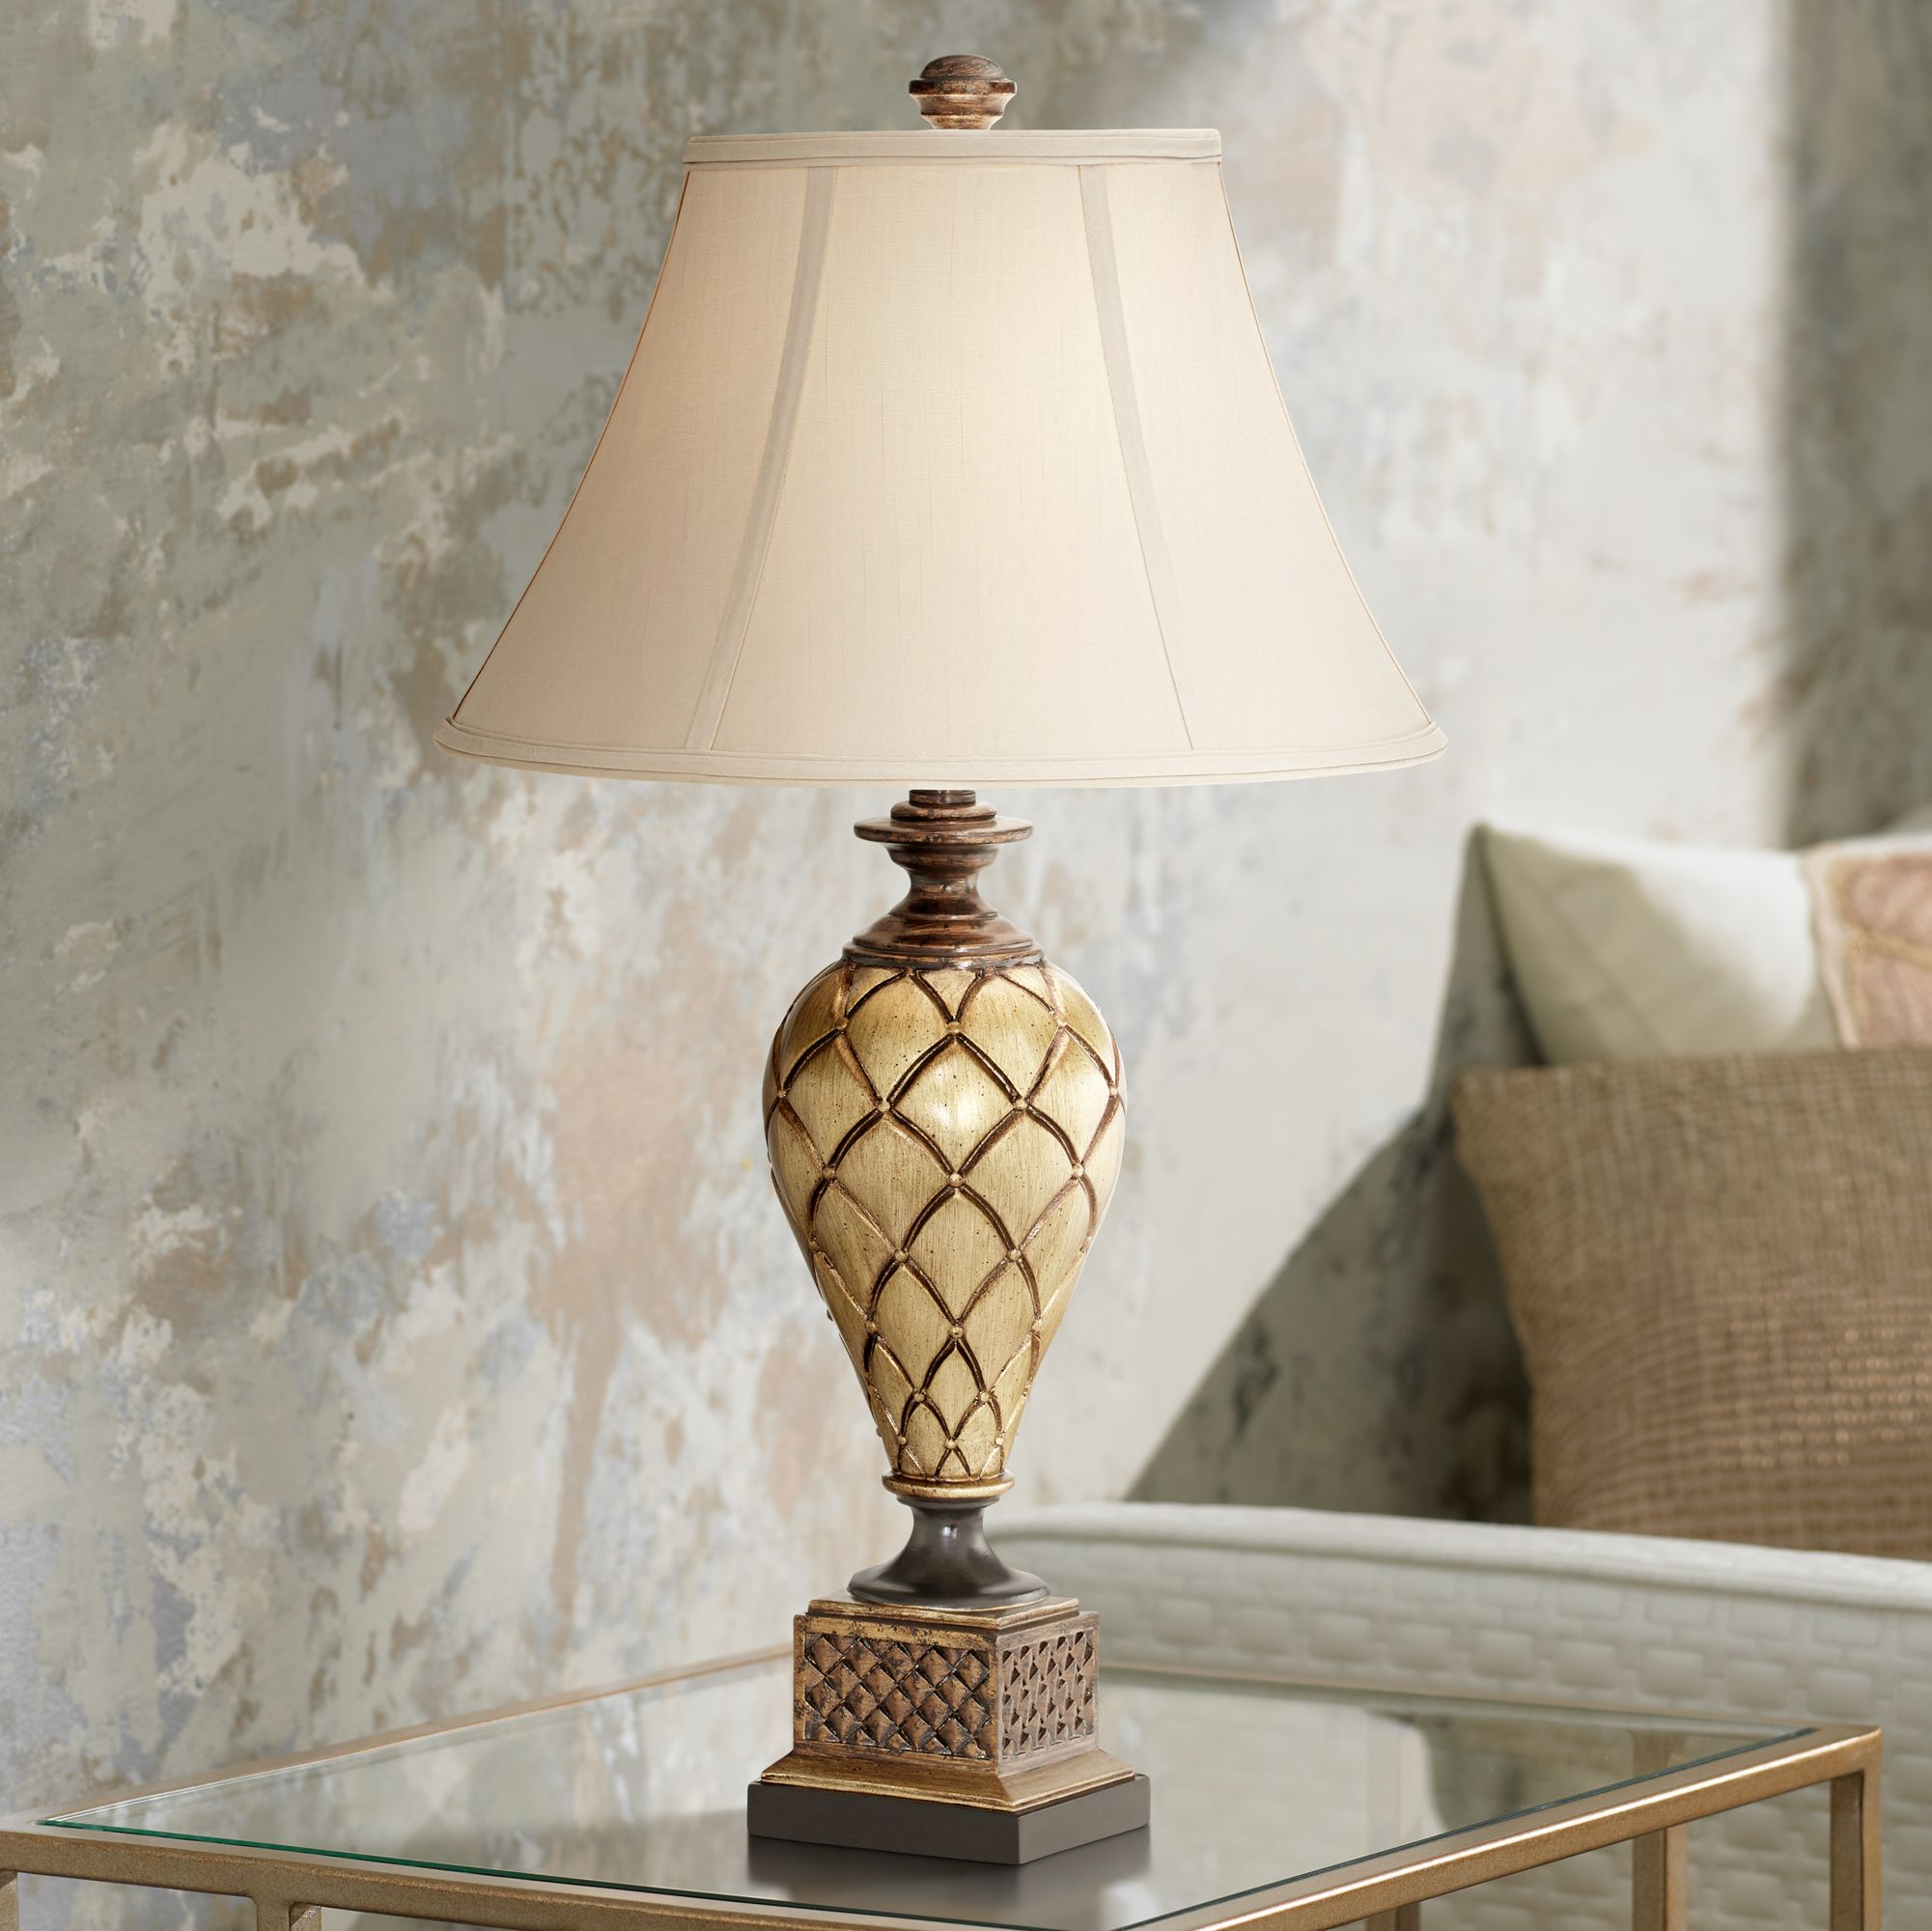 Details About Traditional Table Lamp Antique Gold Urn For Living Room Bedroom Nightstand